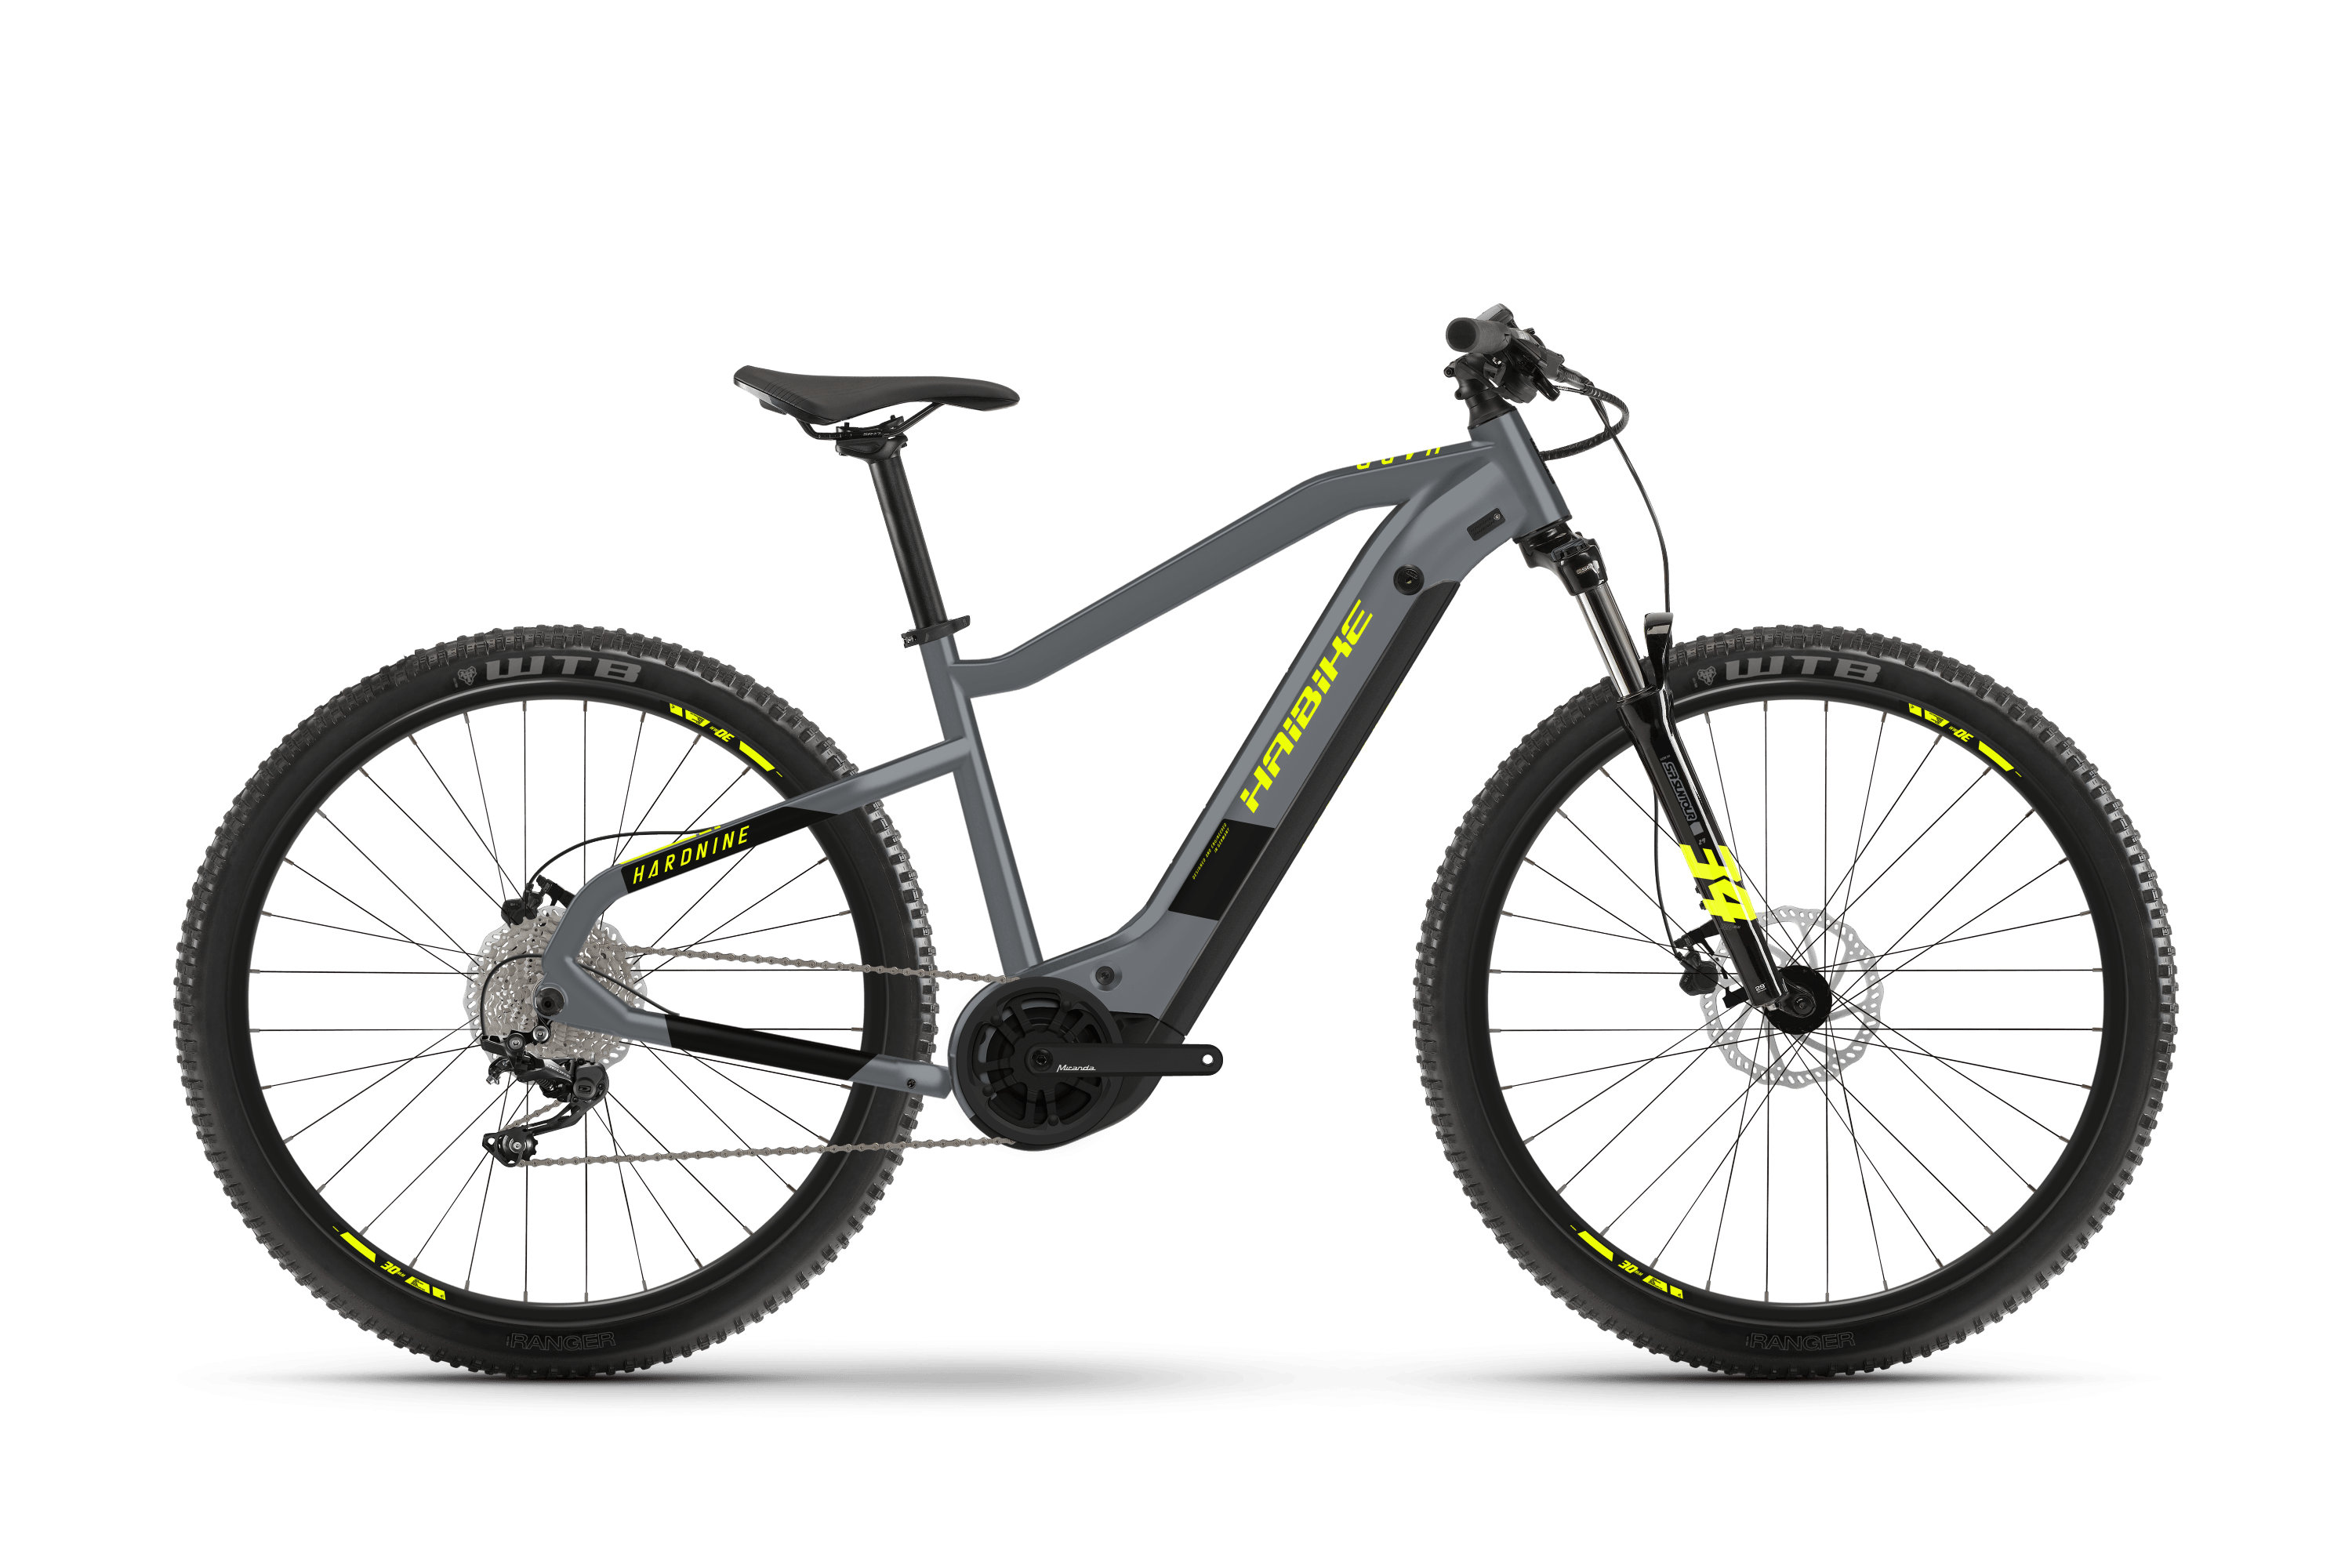 https://w8w5m3f8.stackpathcdn.com/21125/vtt-electrique-haibike-hardnine-6-500wh.jpg